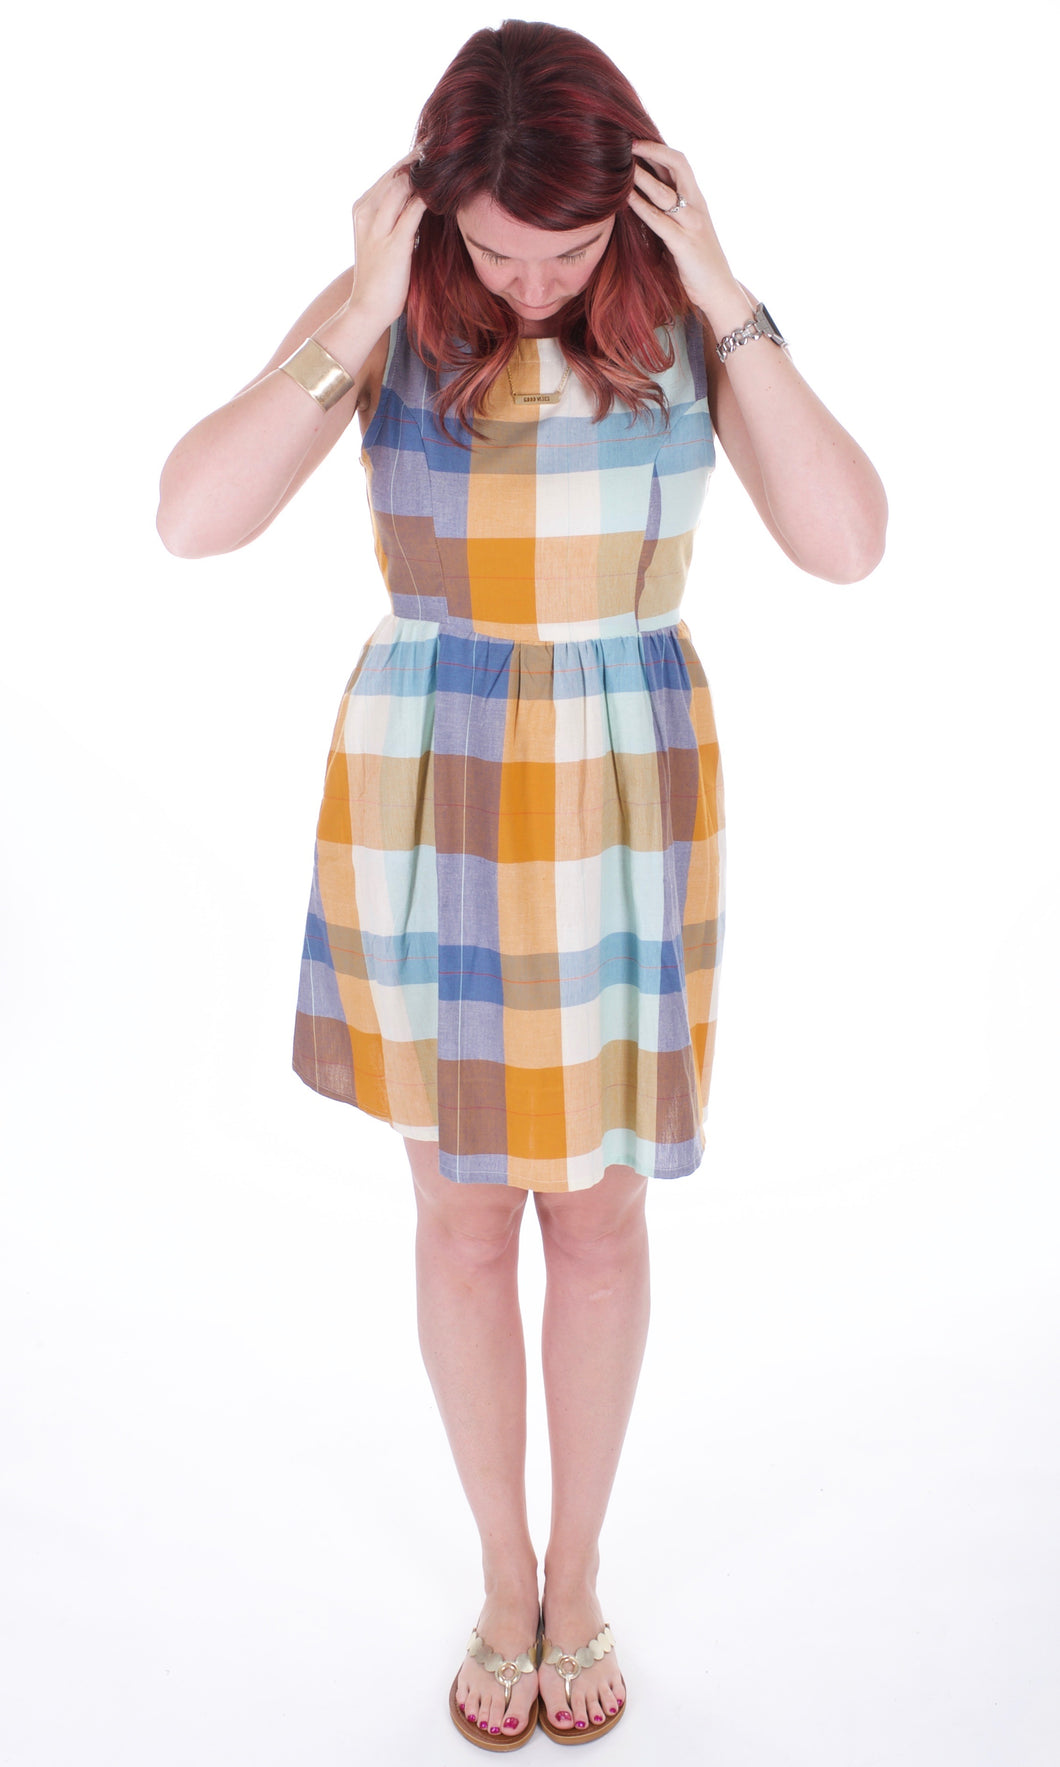 Dilly Dally Plaid Dress - Adventurista Boutique